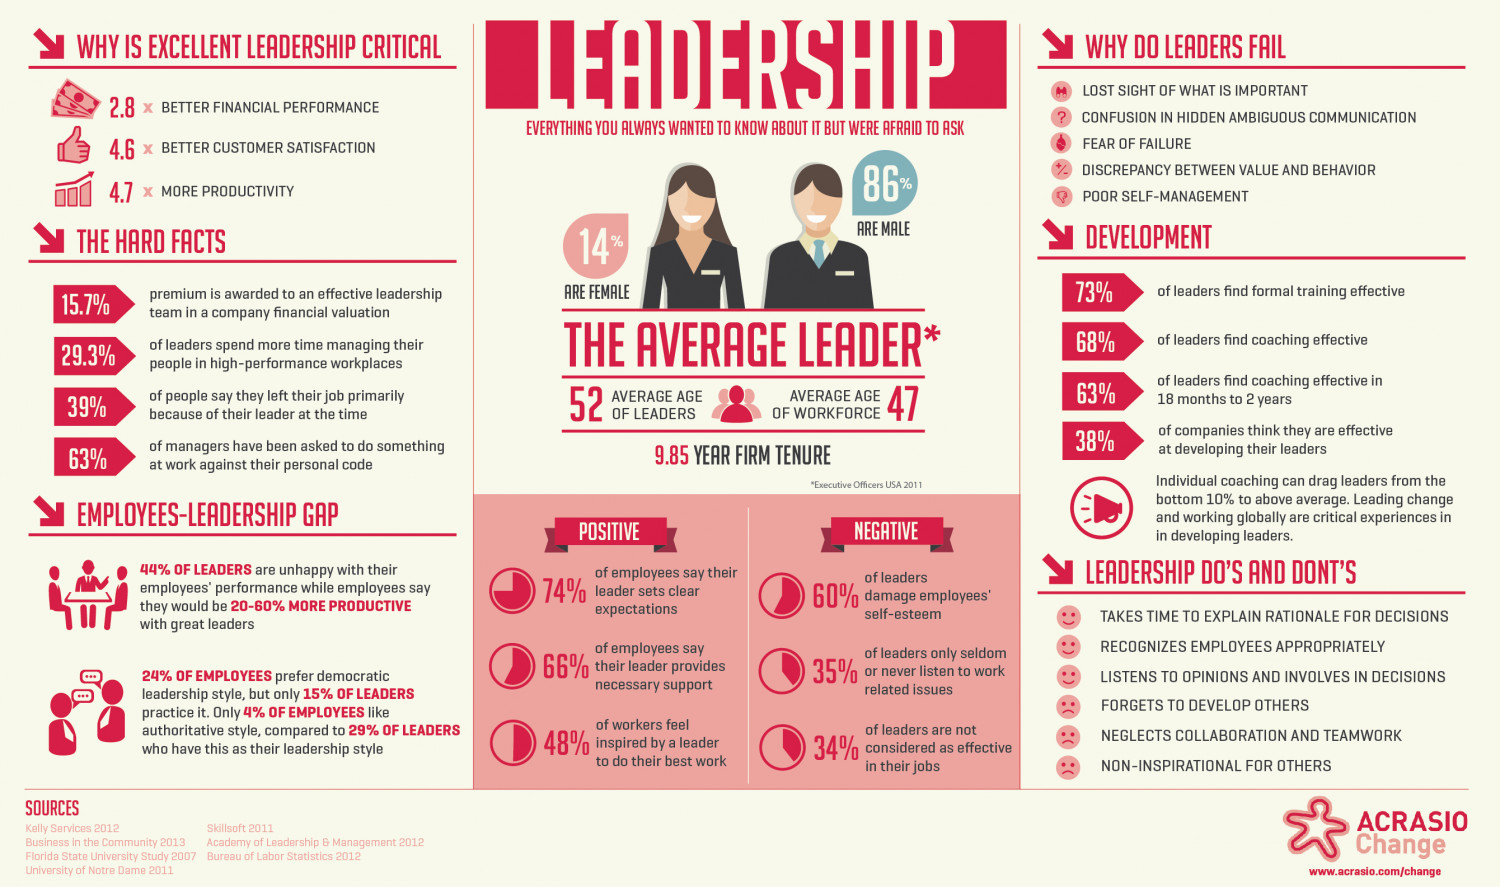 Leadership - Everything you always wanted to know about it but were afraid to ask Infographic